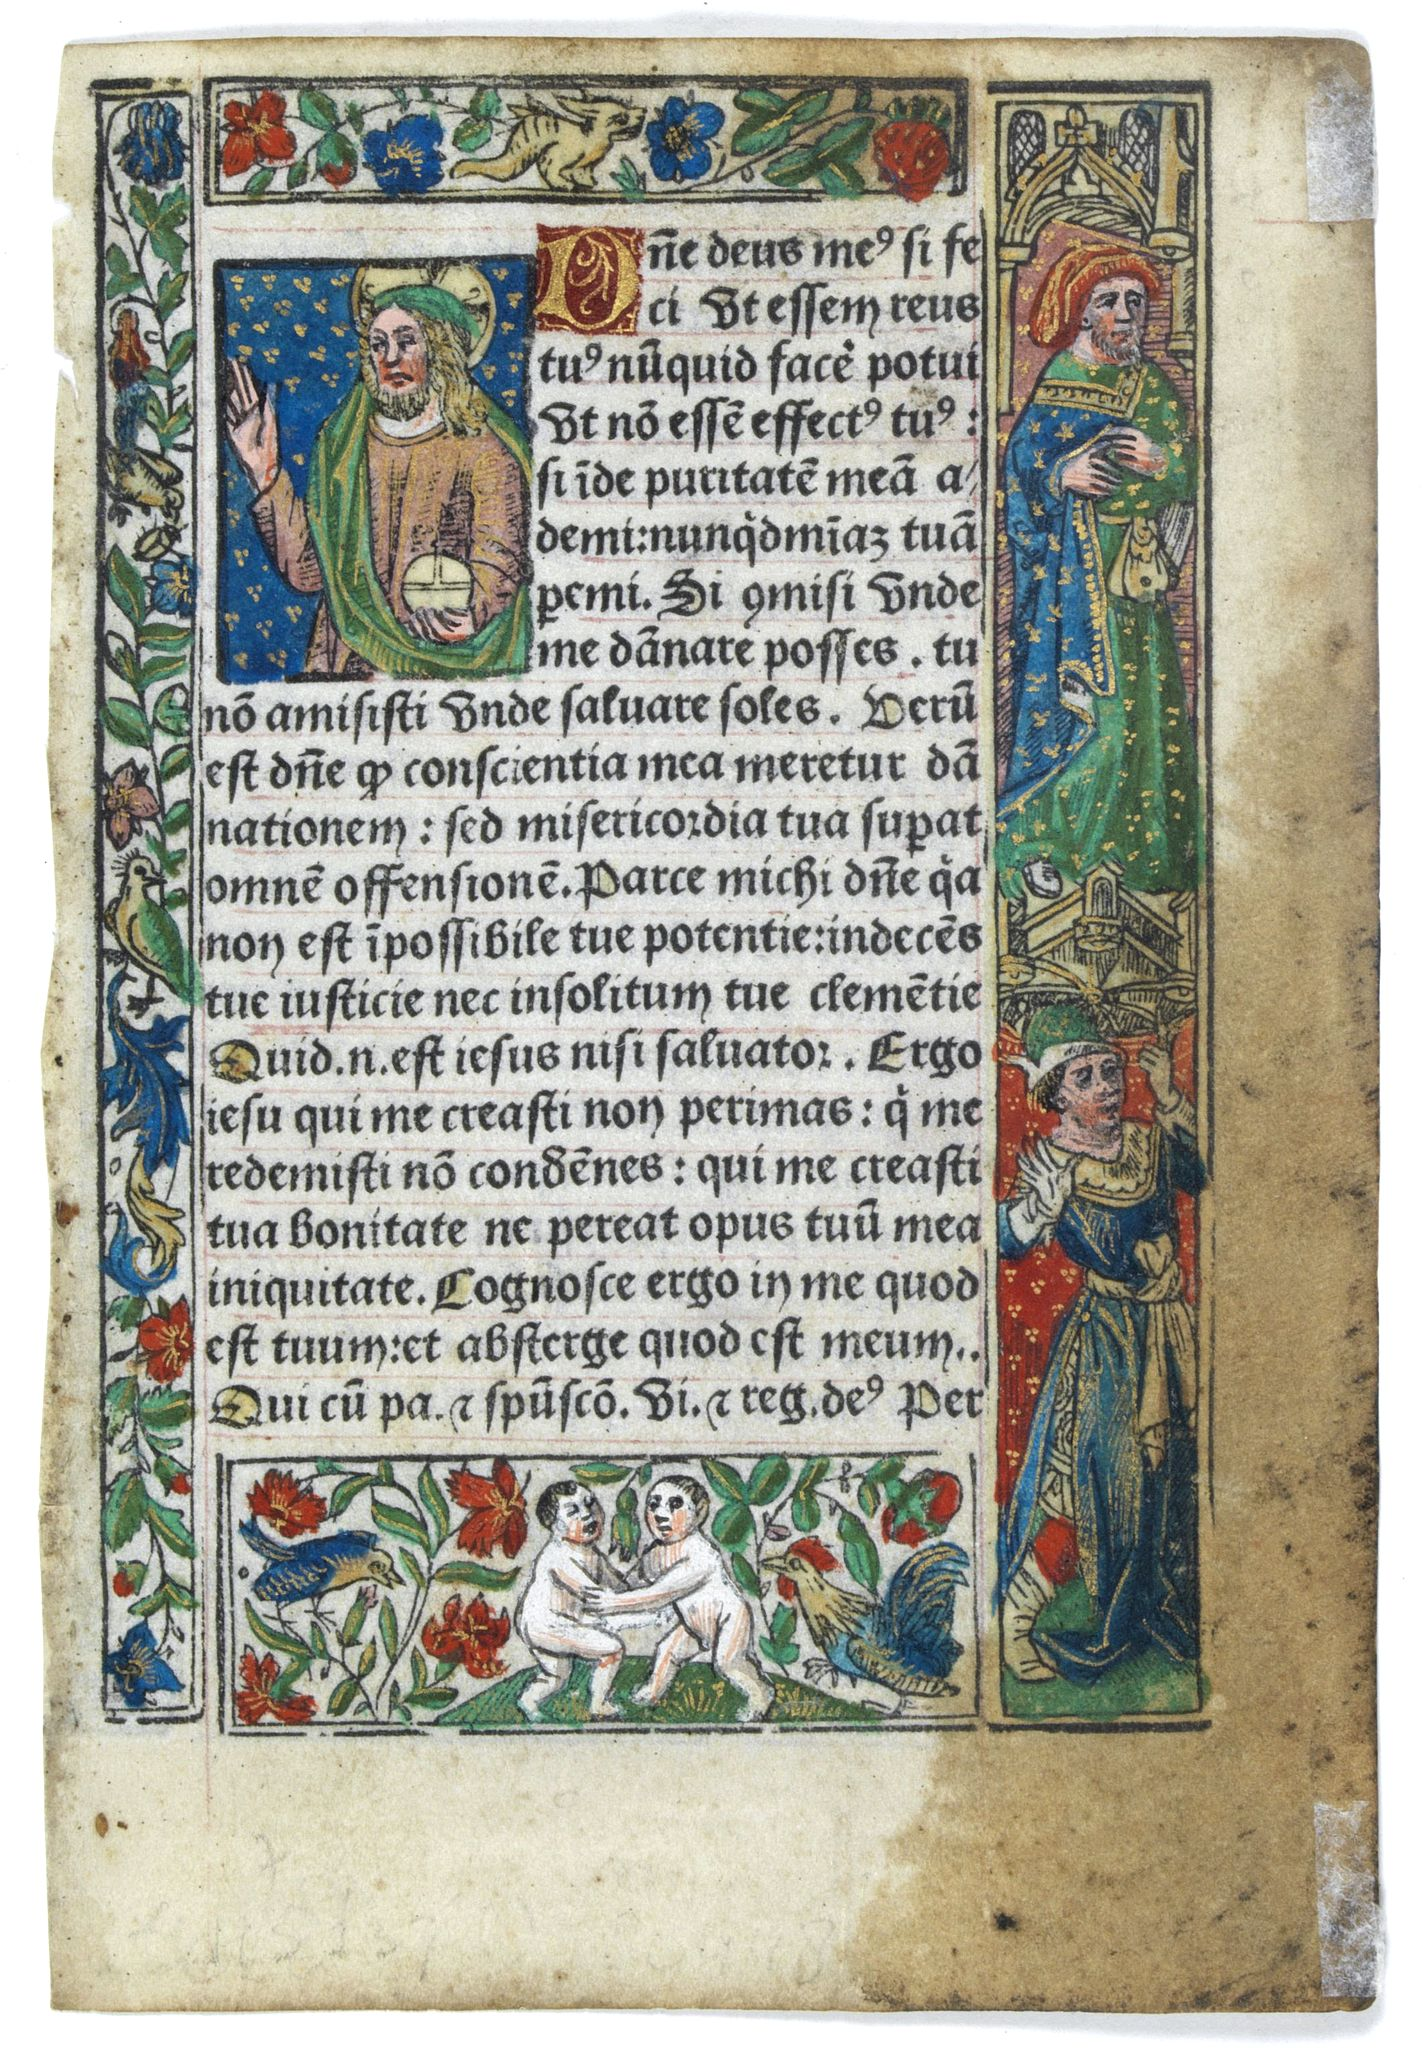 BOOK OF HOURS. -  Leaf on vellum from a printed Book of Hours.